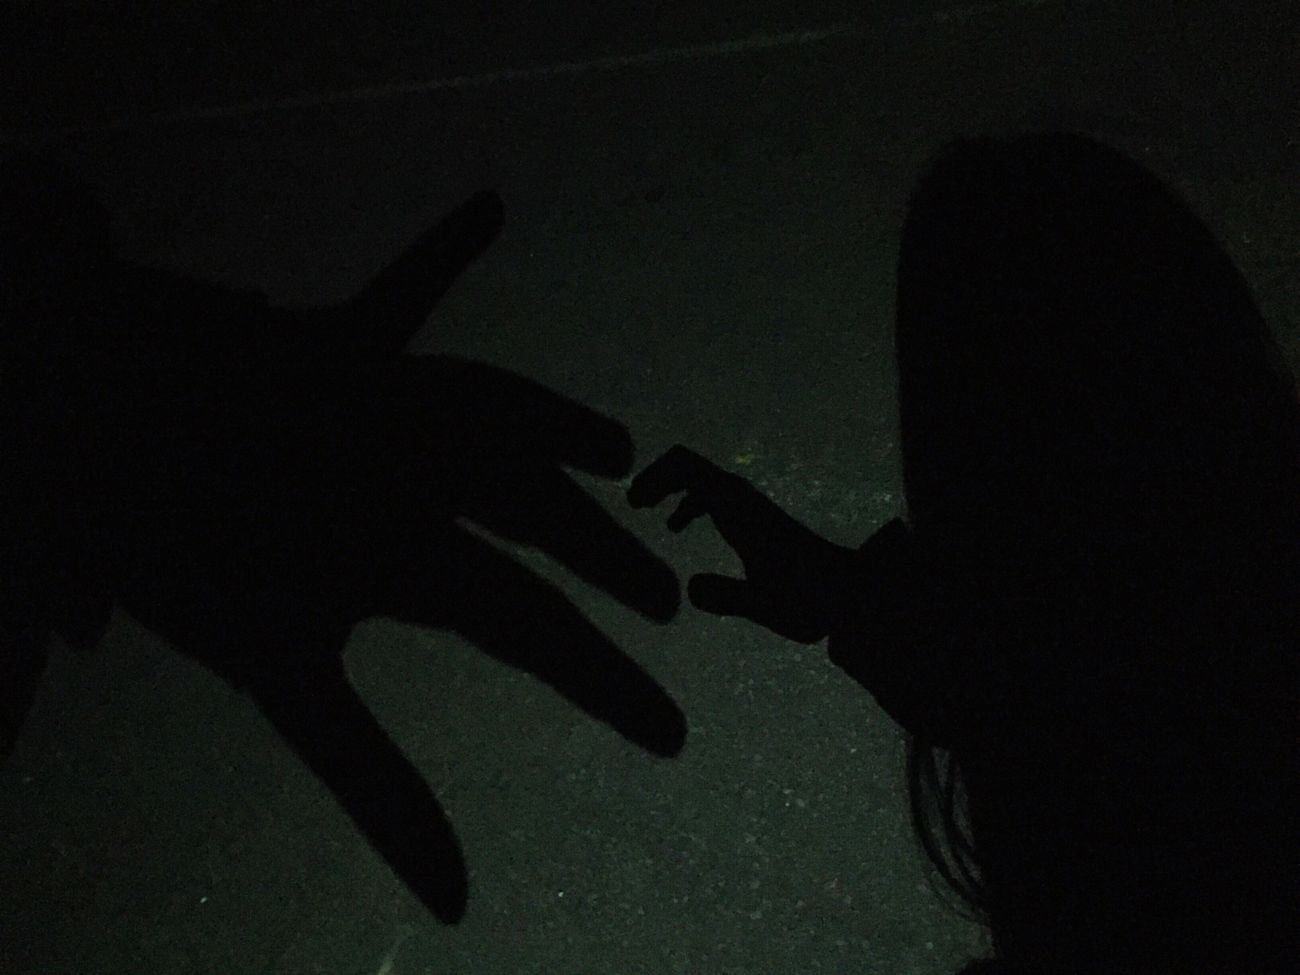 Shadow Creepy Scary Shadows Shadow-art Shadow Photography Reaching Hand Shadow People Shadow